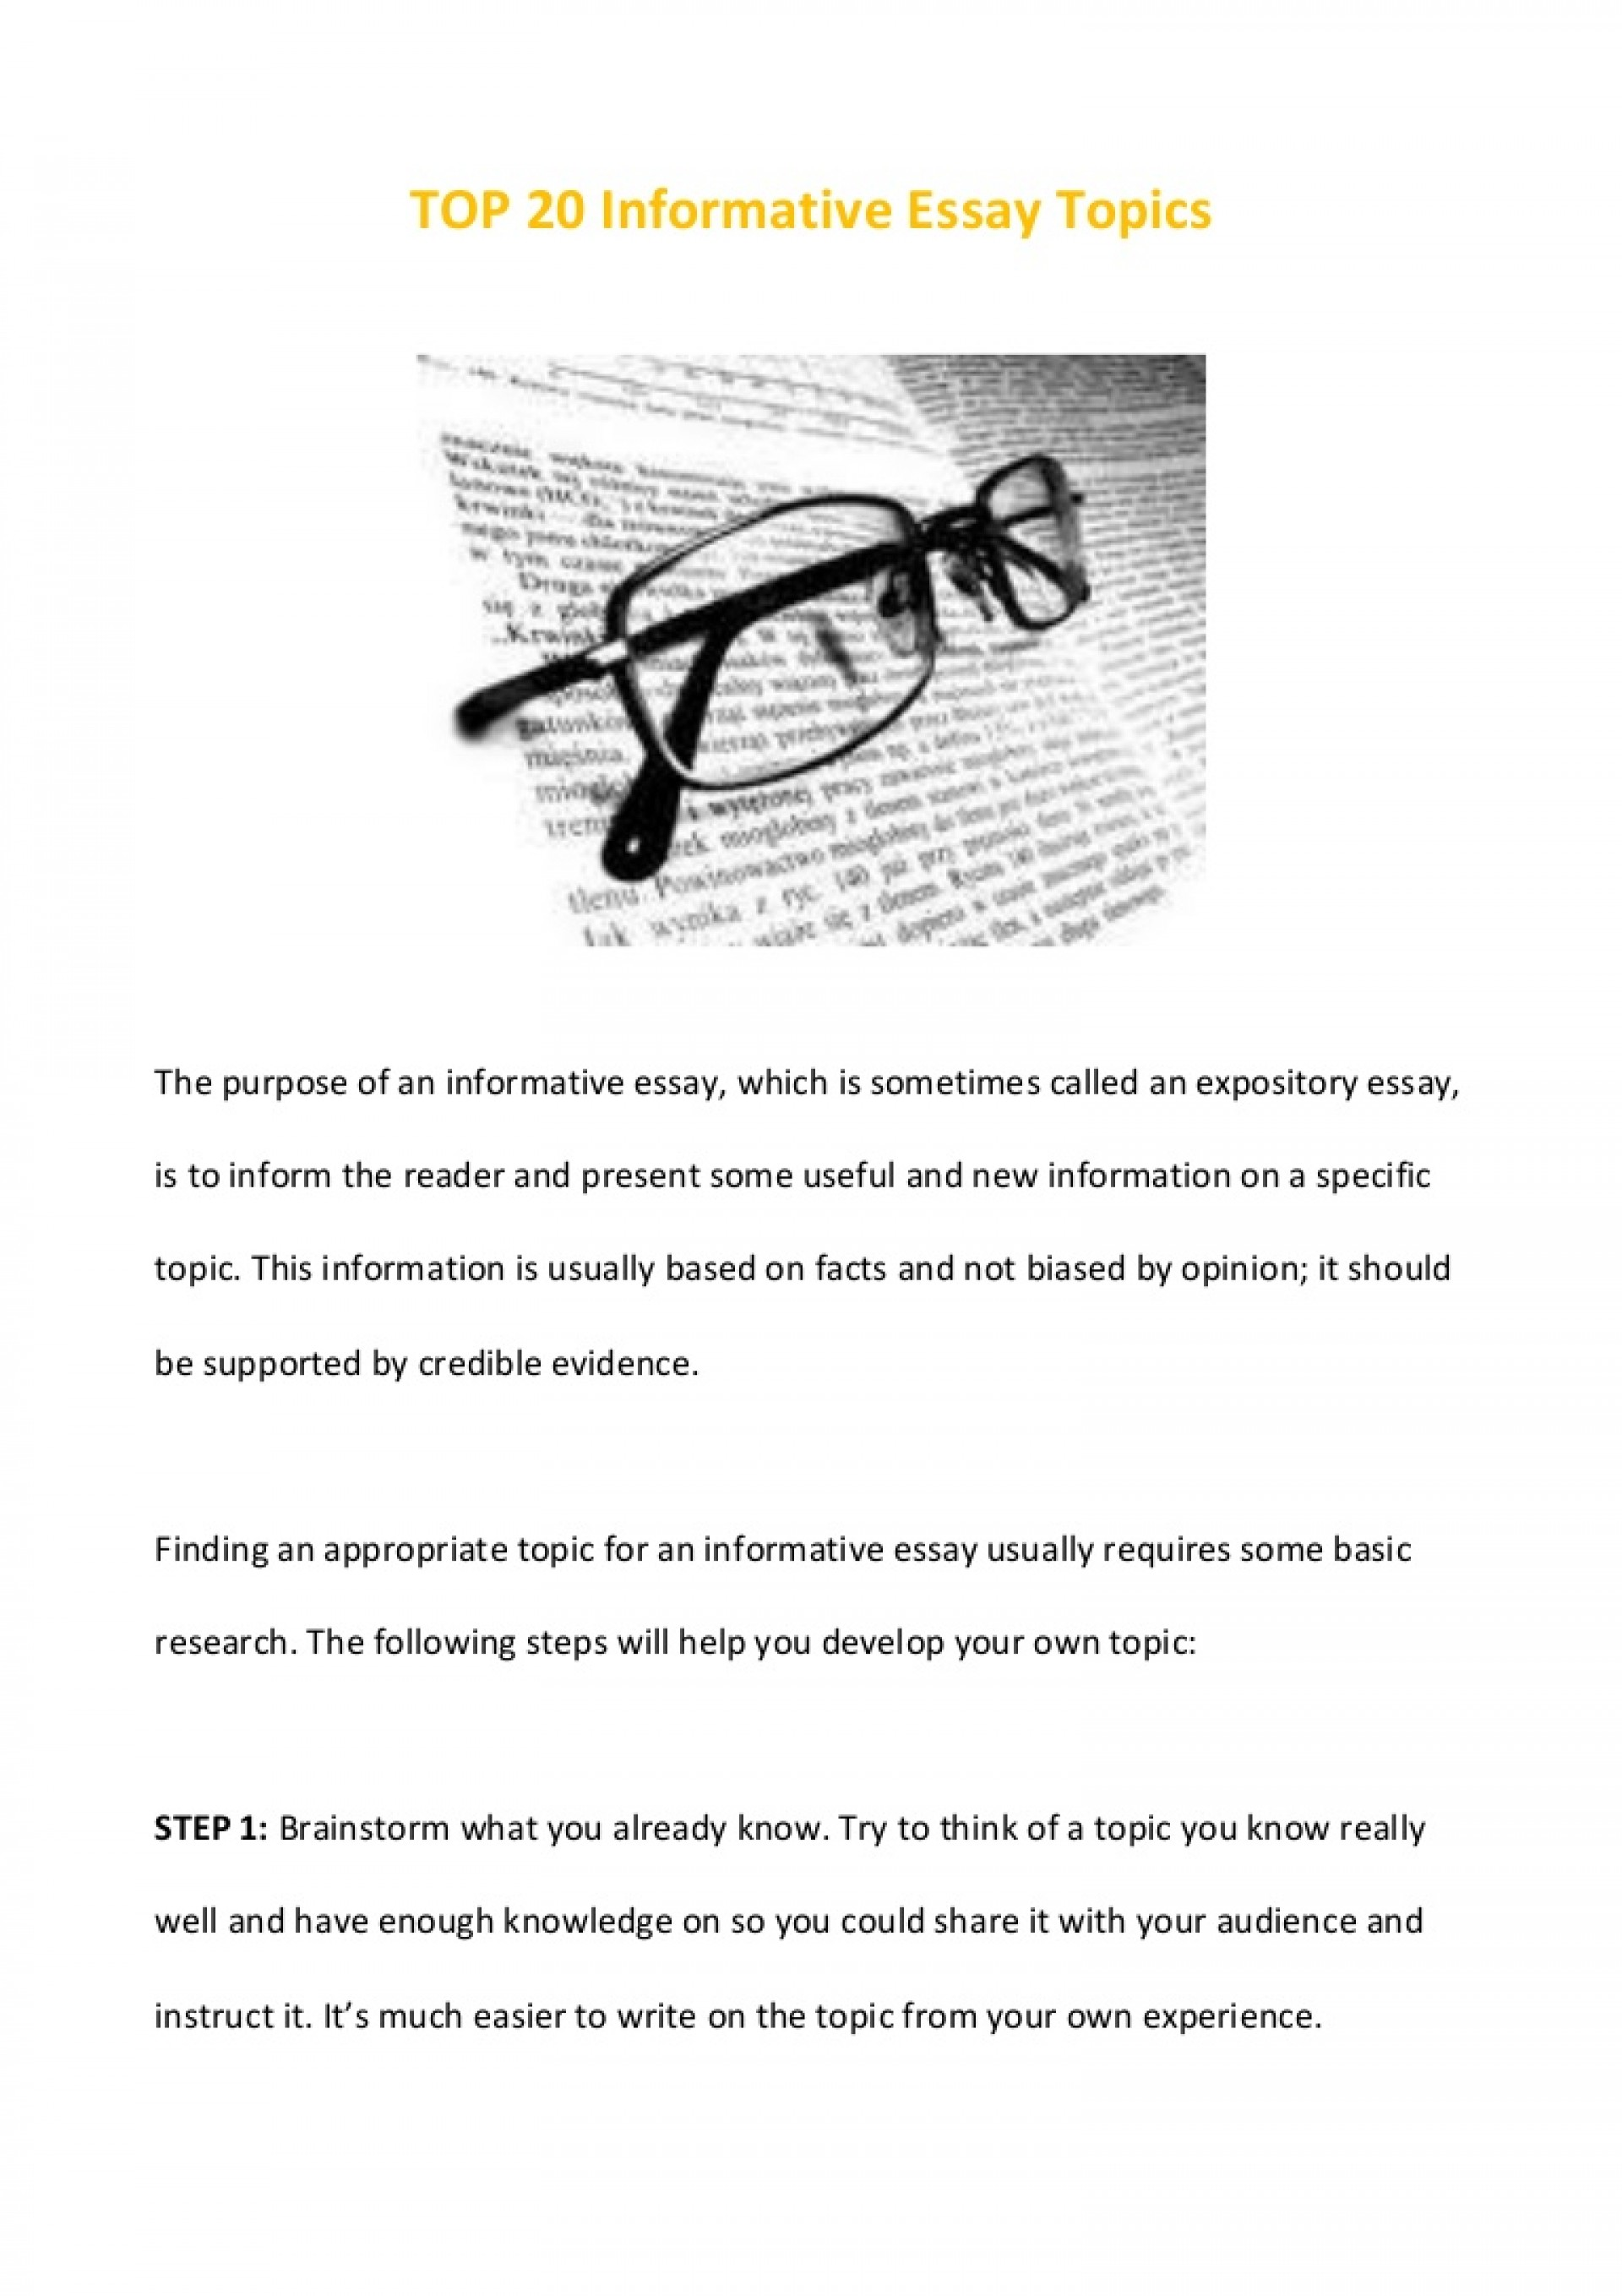 008 Essay Example Informative Ideas Top20informativeessaytopics Phpapp02 Thumbnail Wondrous Writing Prompts 5th Grade Common Core Expository 4th Pdf 1920